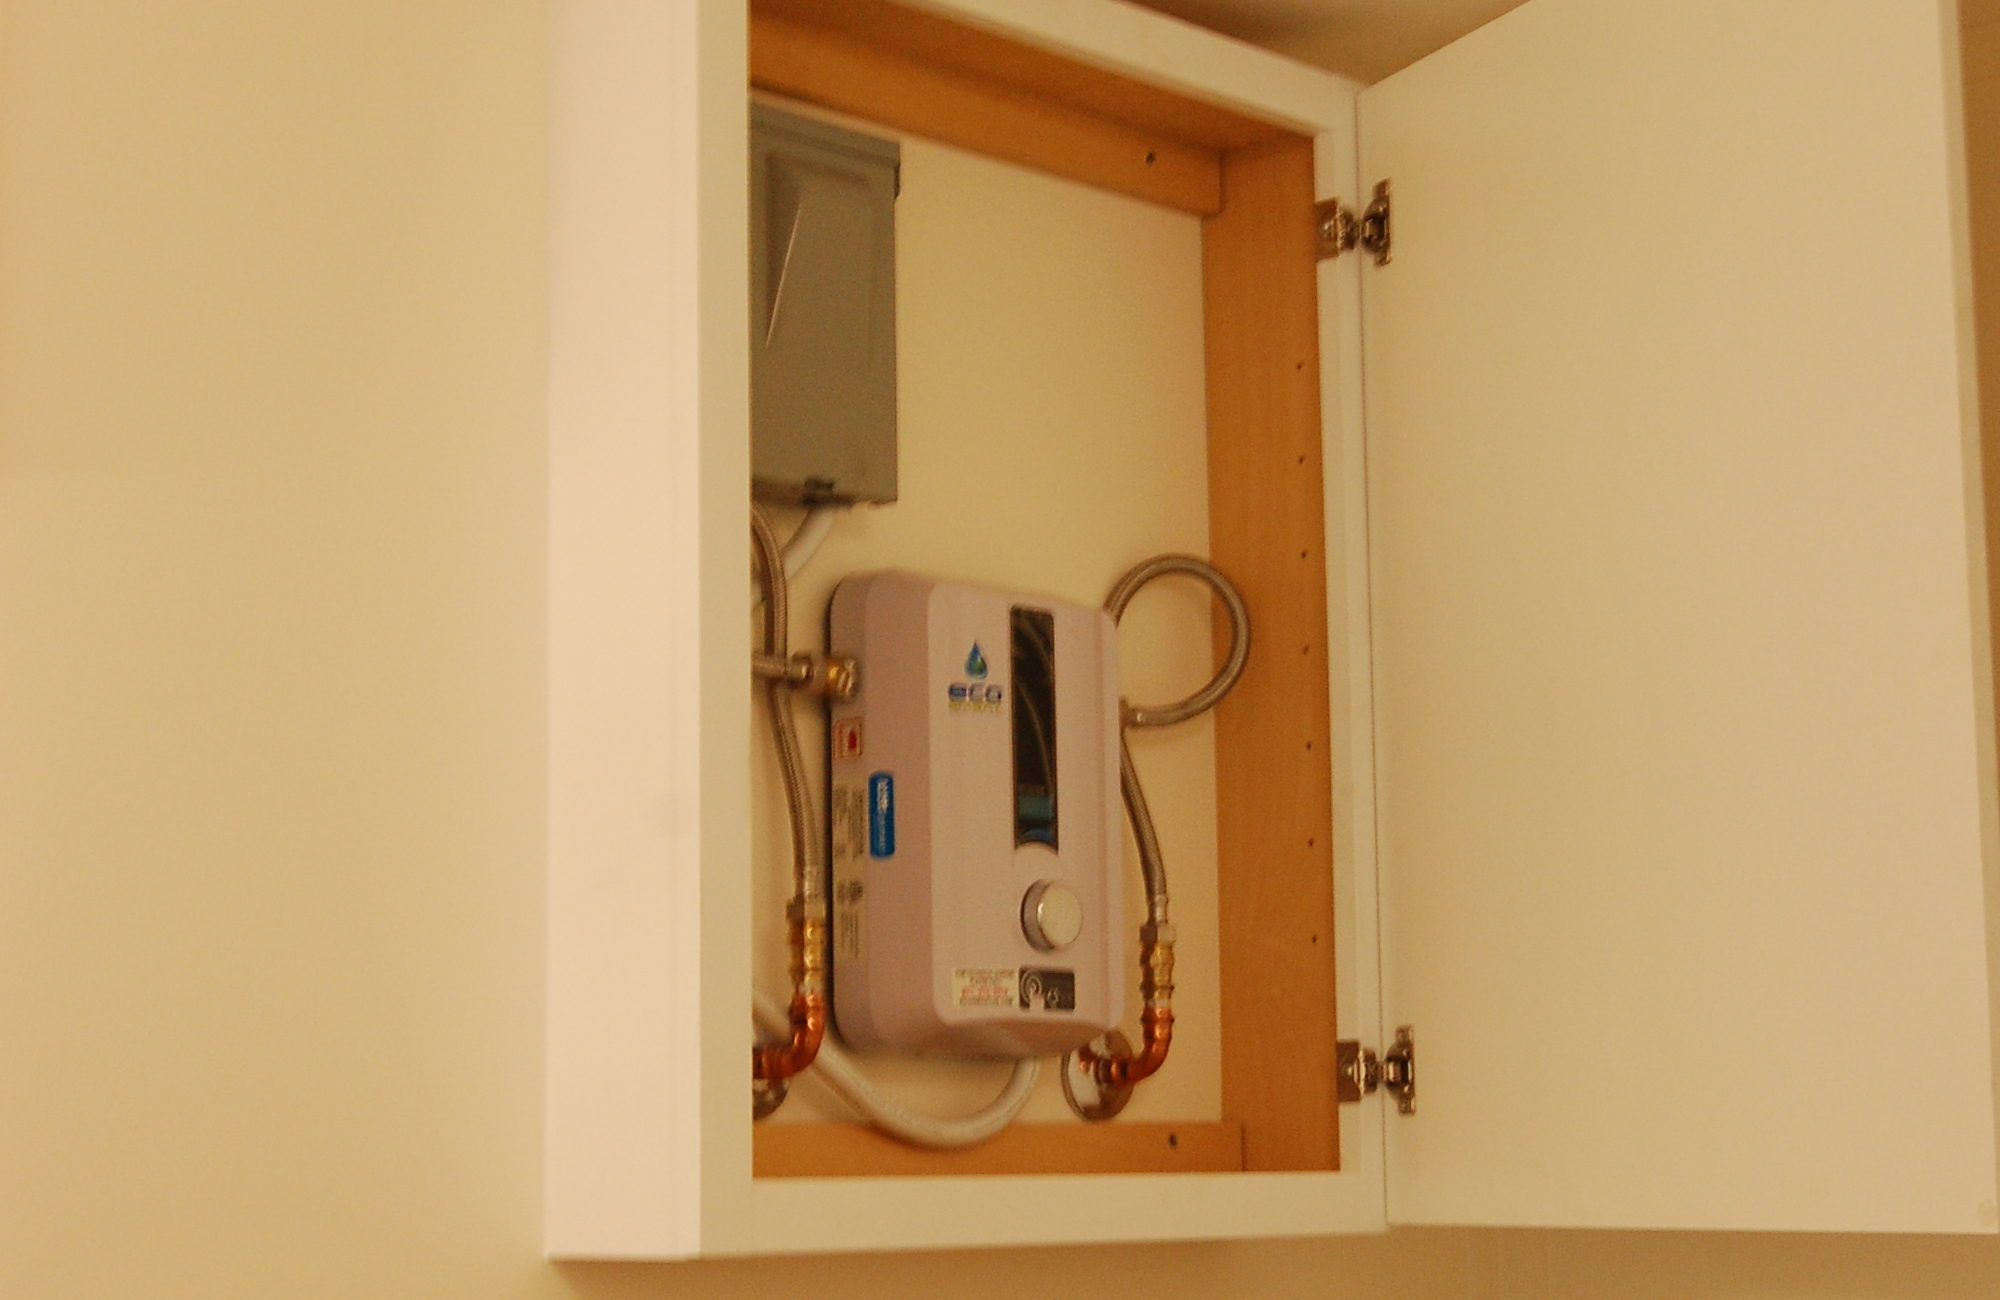 GSH_CFU UFAS Bathroom tankless water heater